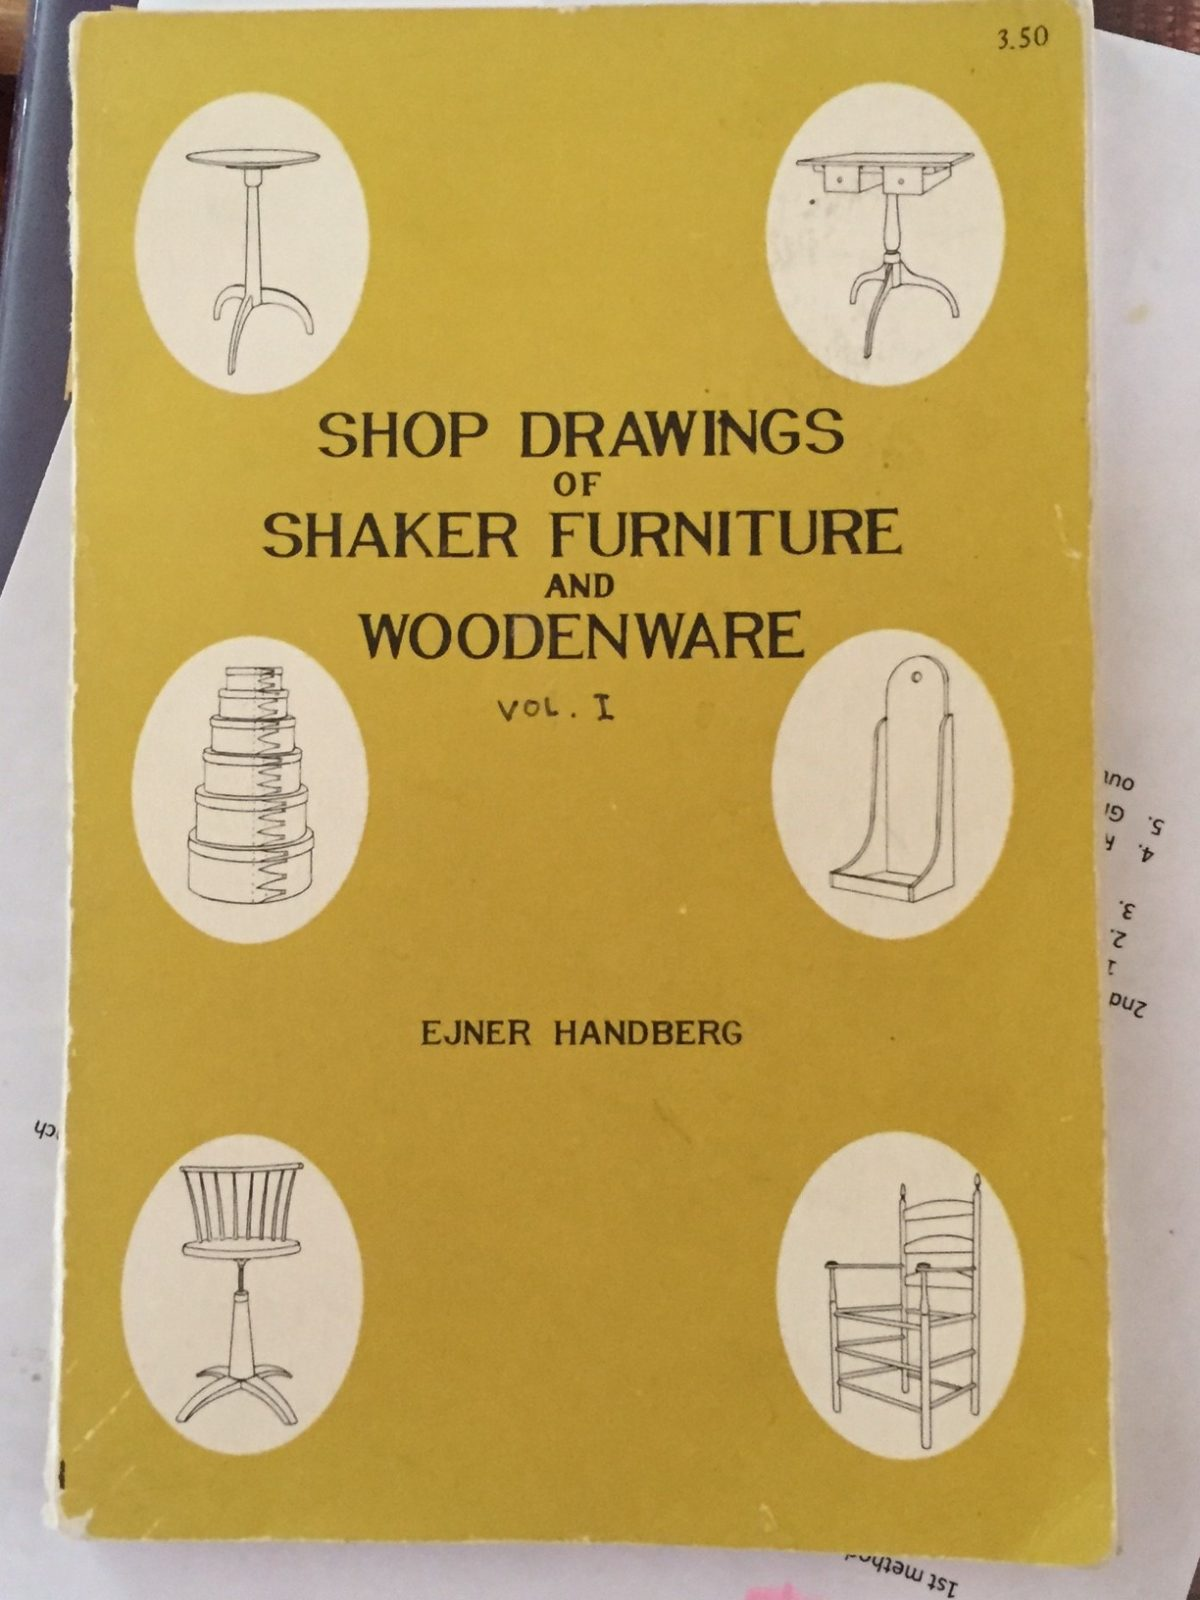 The design and dimensions come from this gem of a book, Shop Drawings of Shaker Furniture and Woodenware by Ejner Handberg. I placed an order for my own copy as soon as Chris showed it to me.